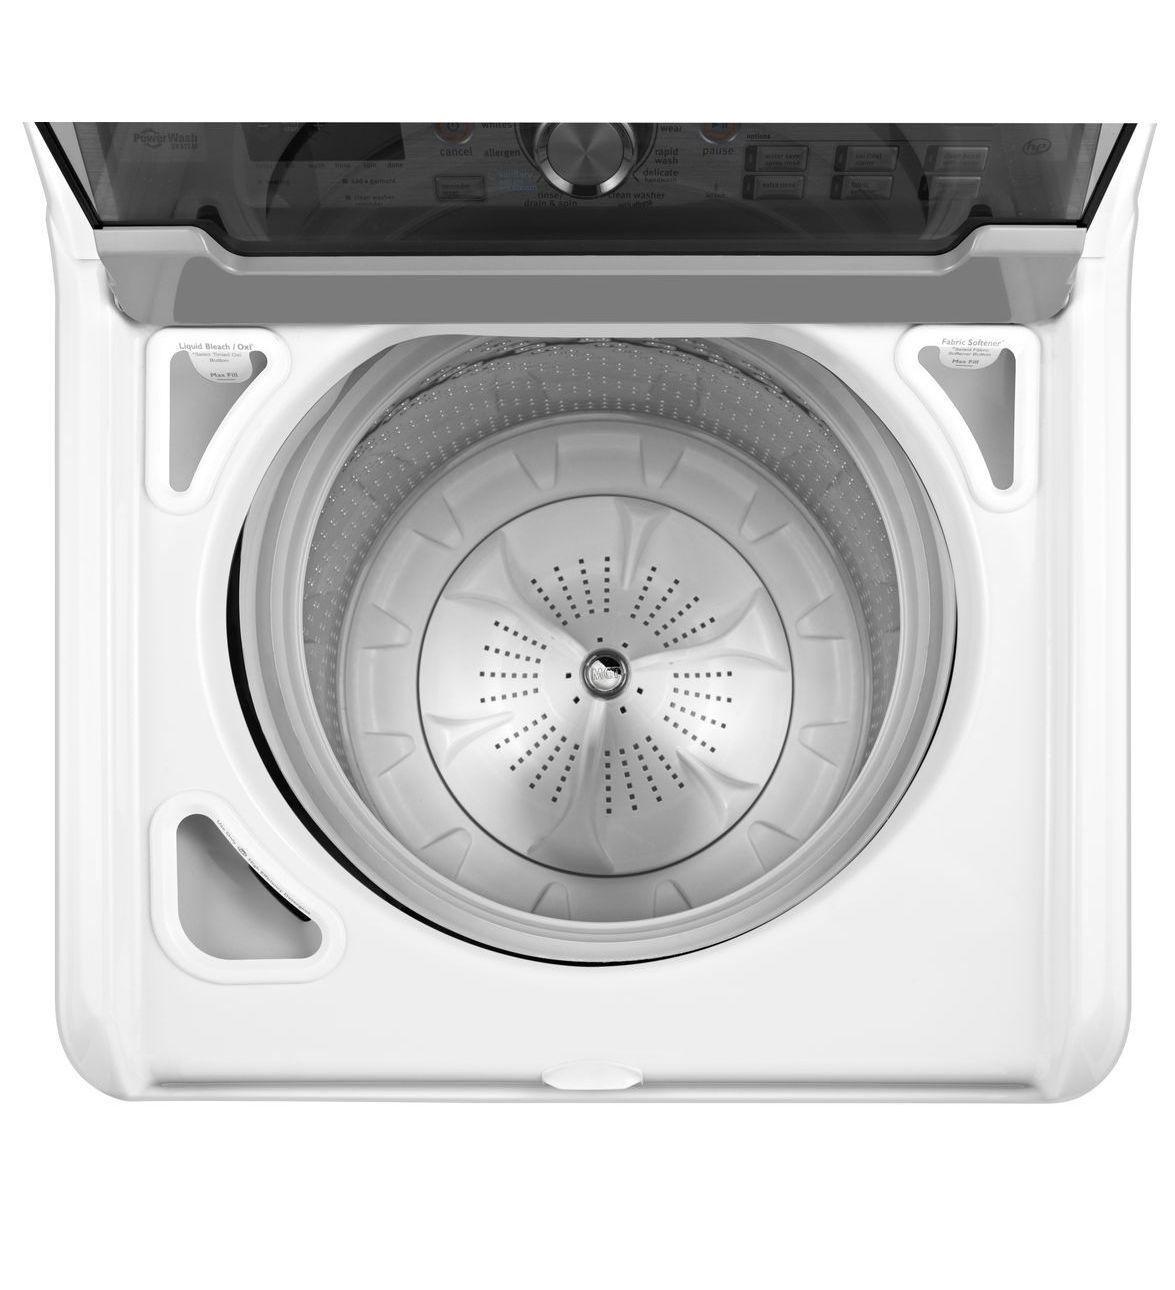 Maytag Mvwb725bw 28 Quot Top Load Washer With 4 5 Cu Ft